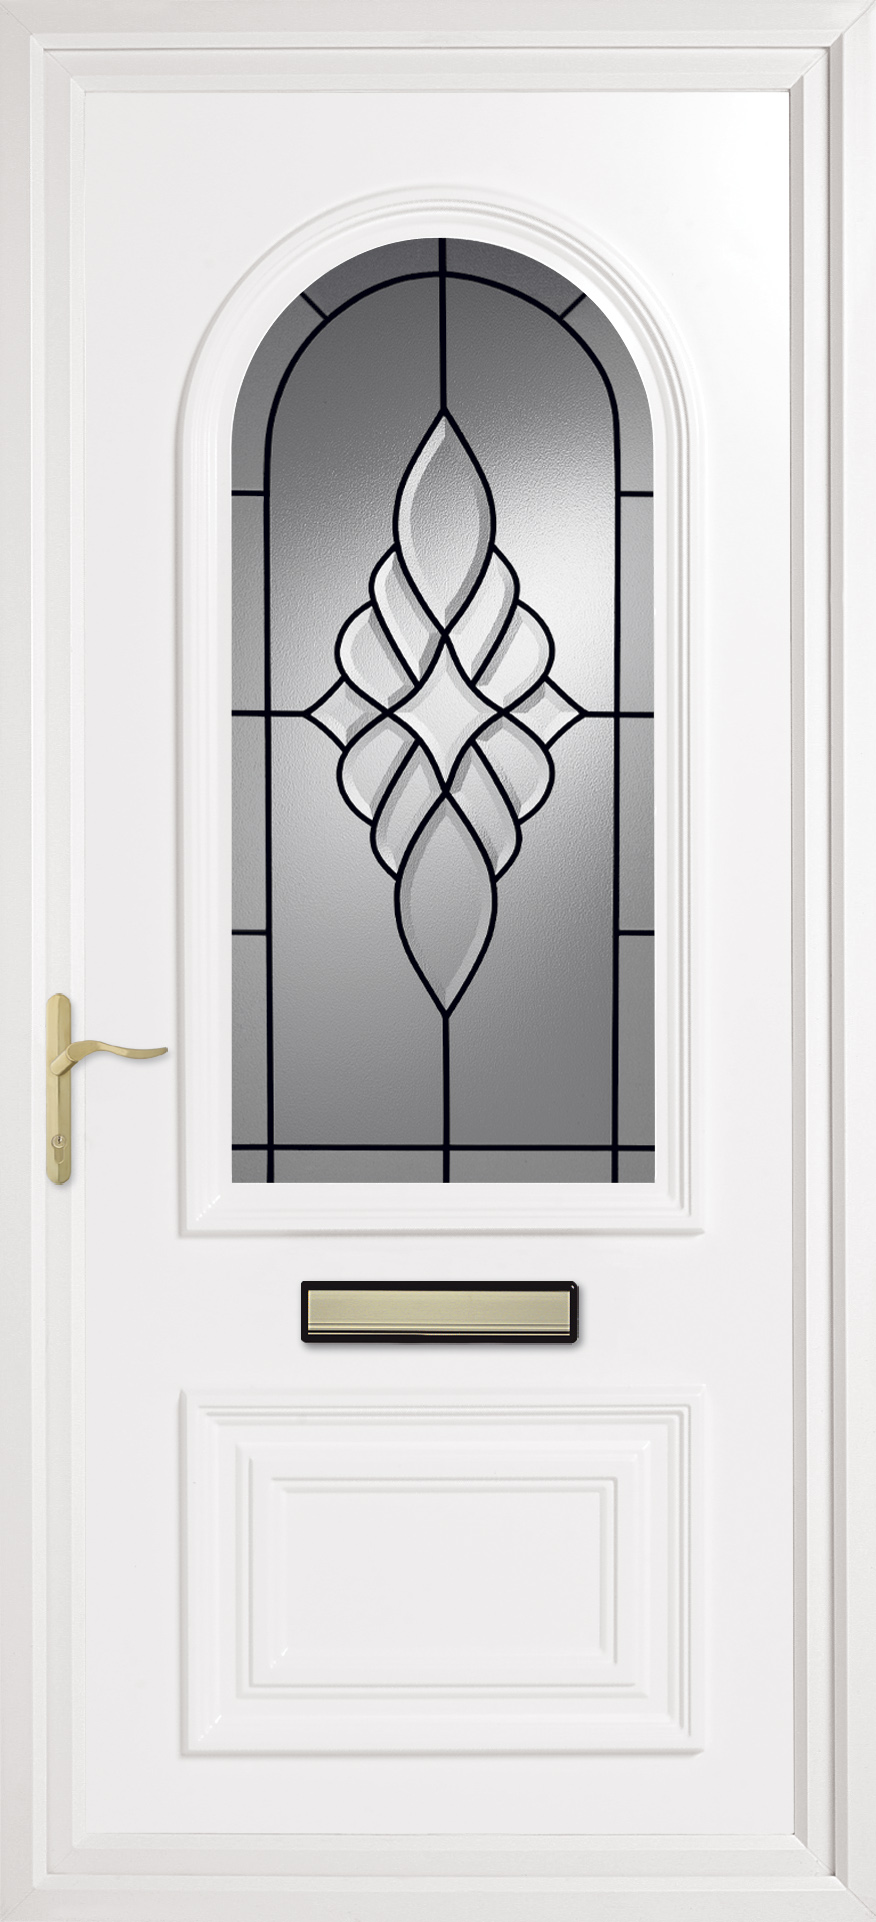 Residential doors gb windows and doors high wycombe for Affordable furniture colne